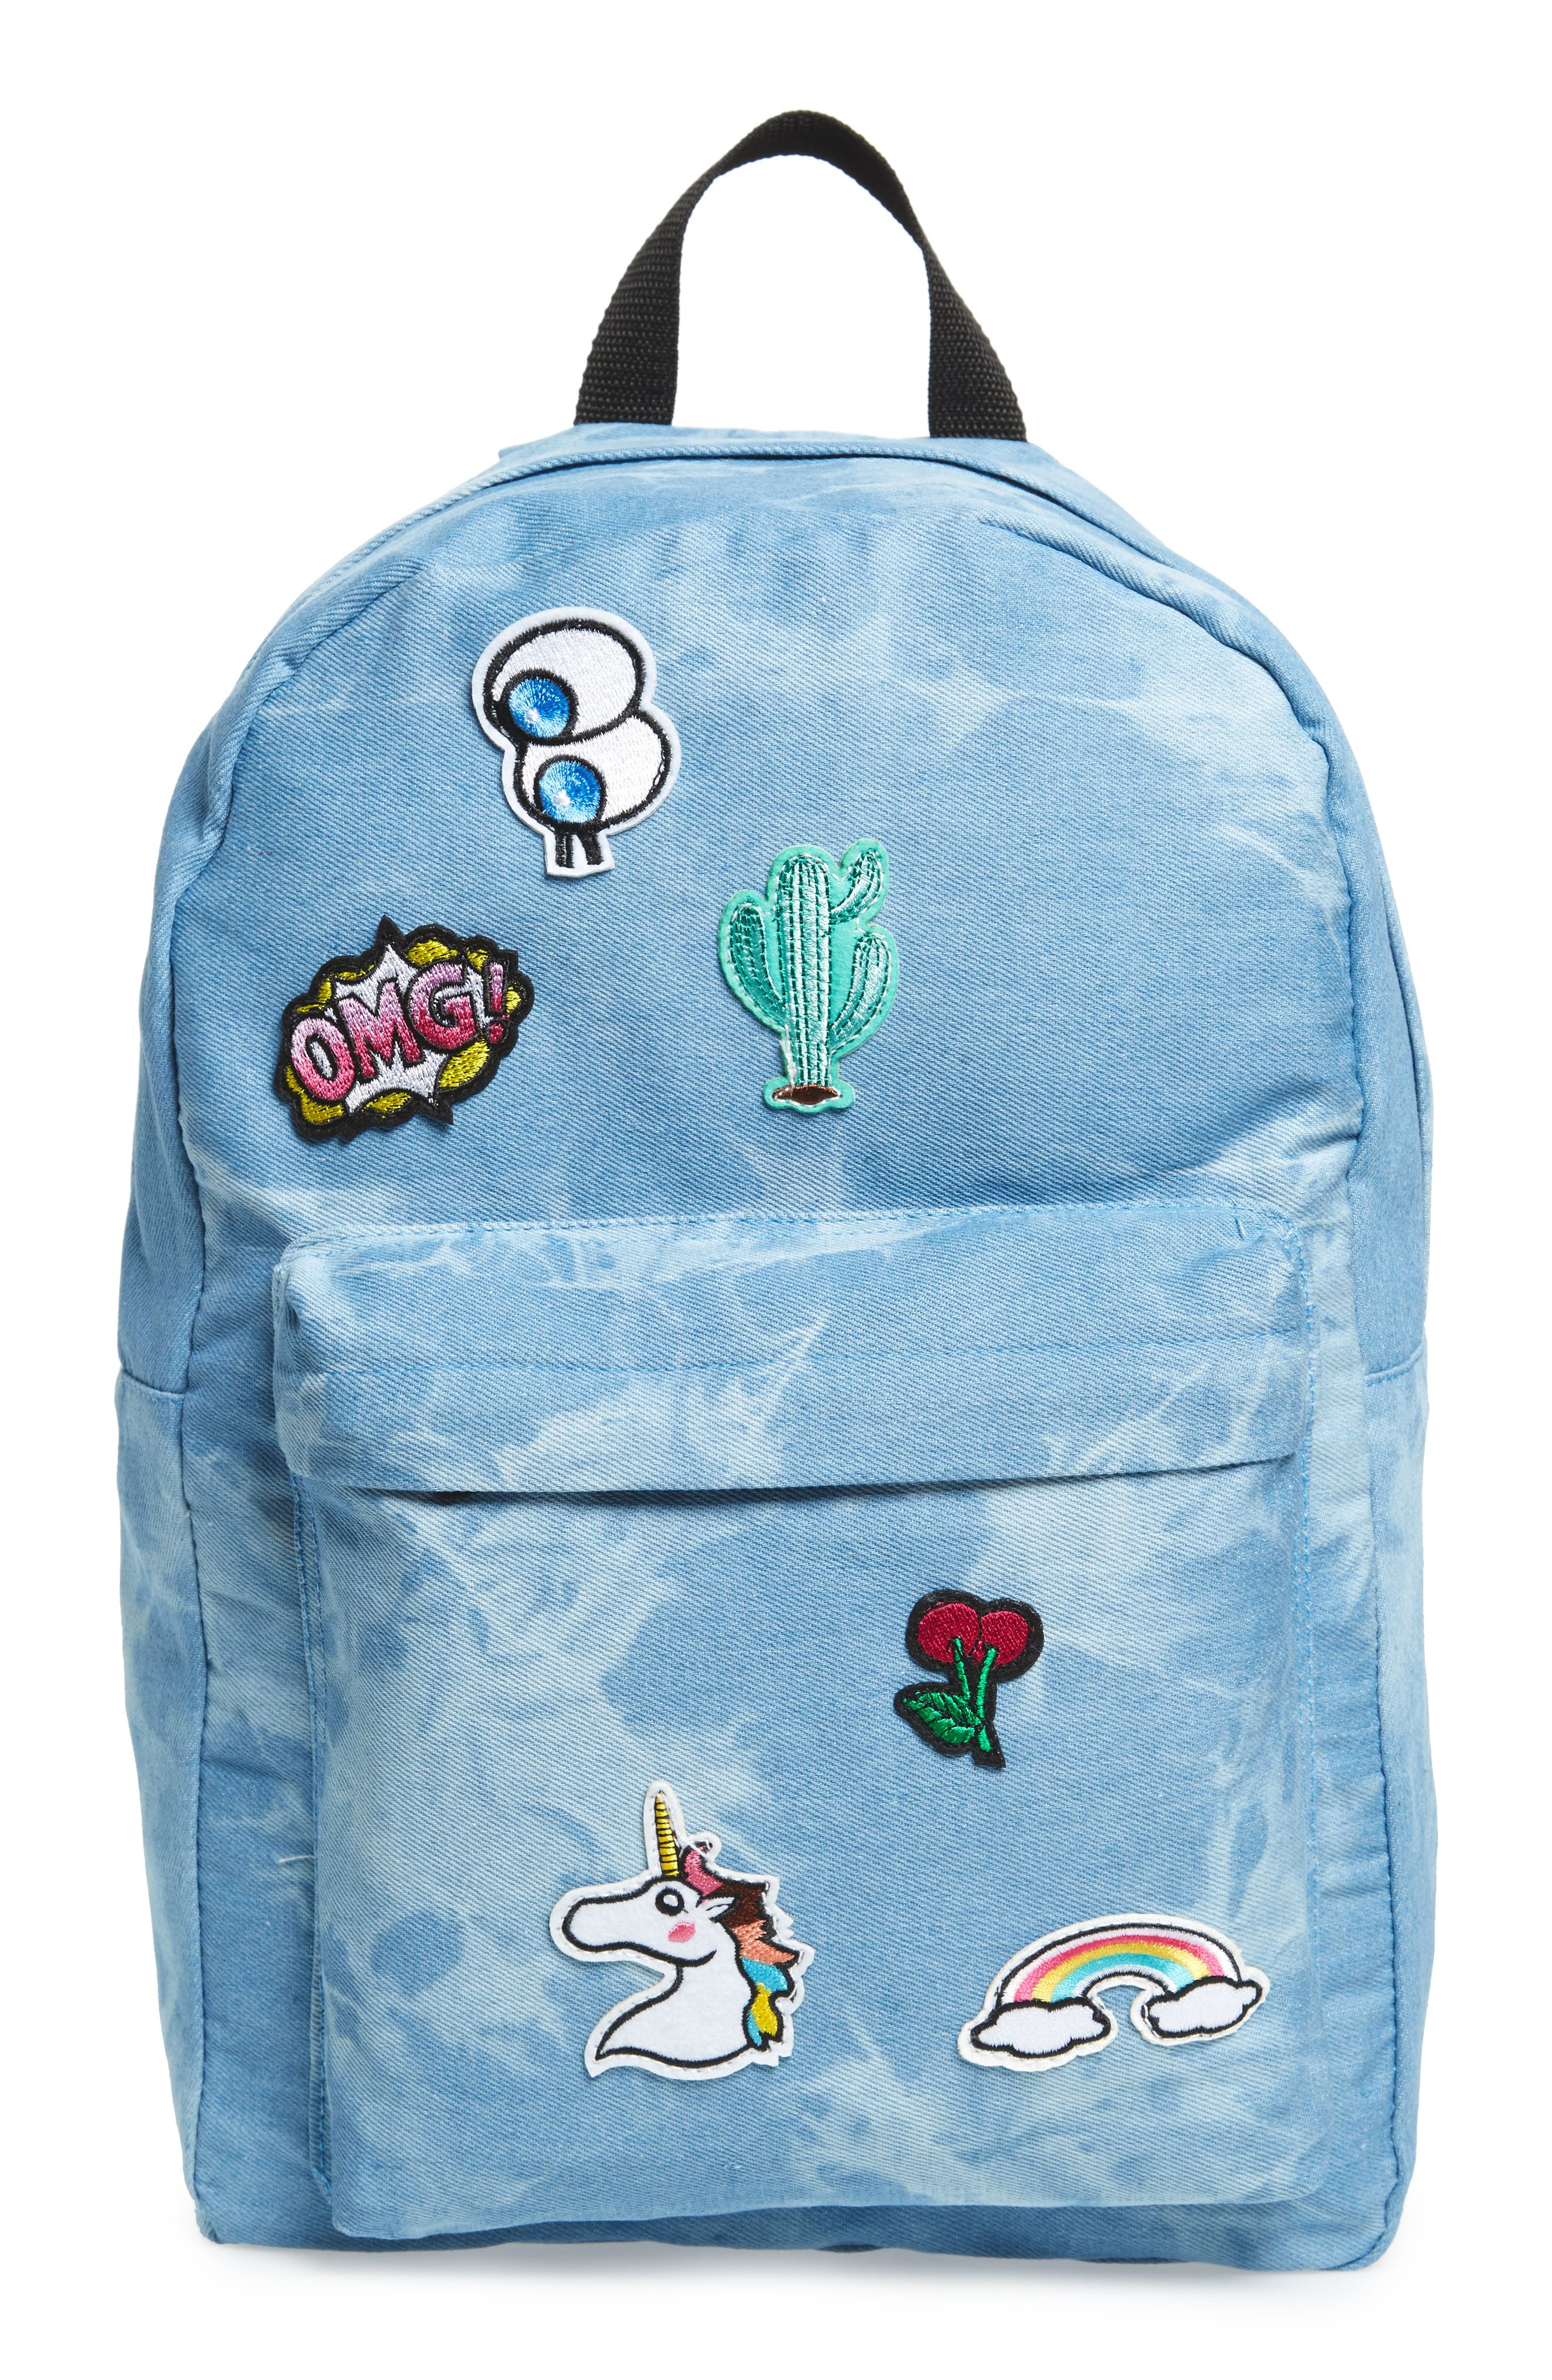 Accessory Collective Tie Dye Backpack,                         Main,                         color, 400